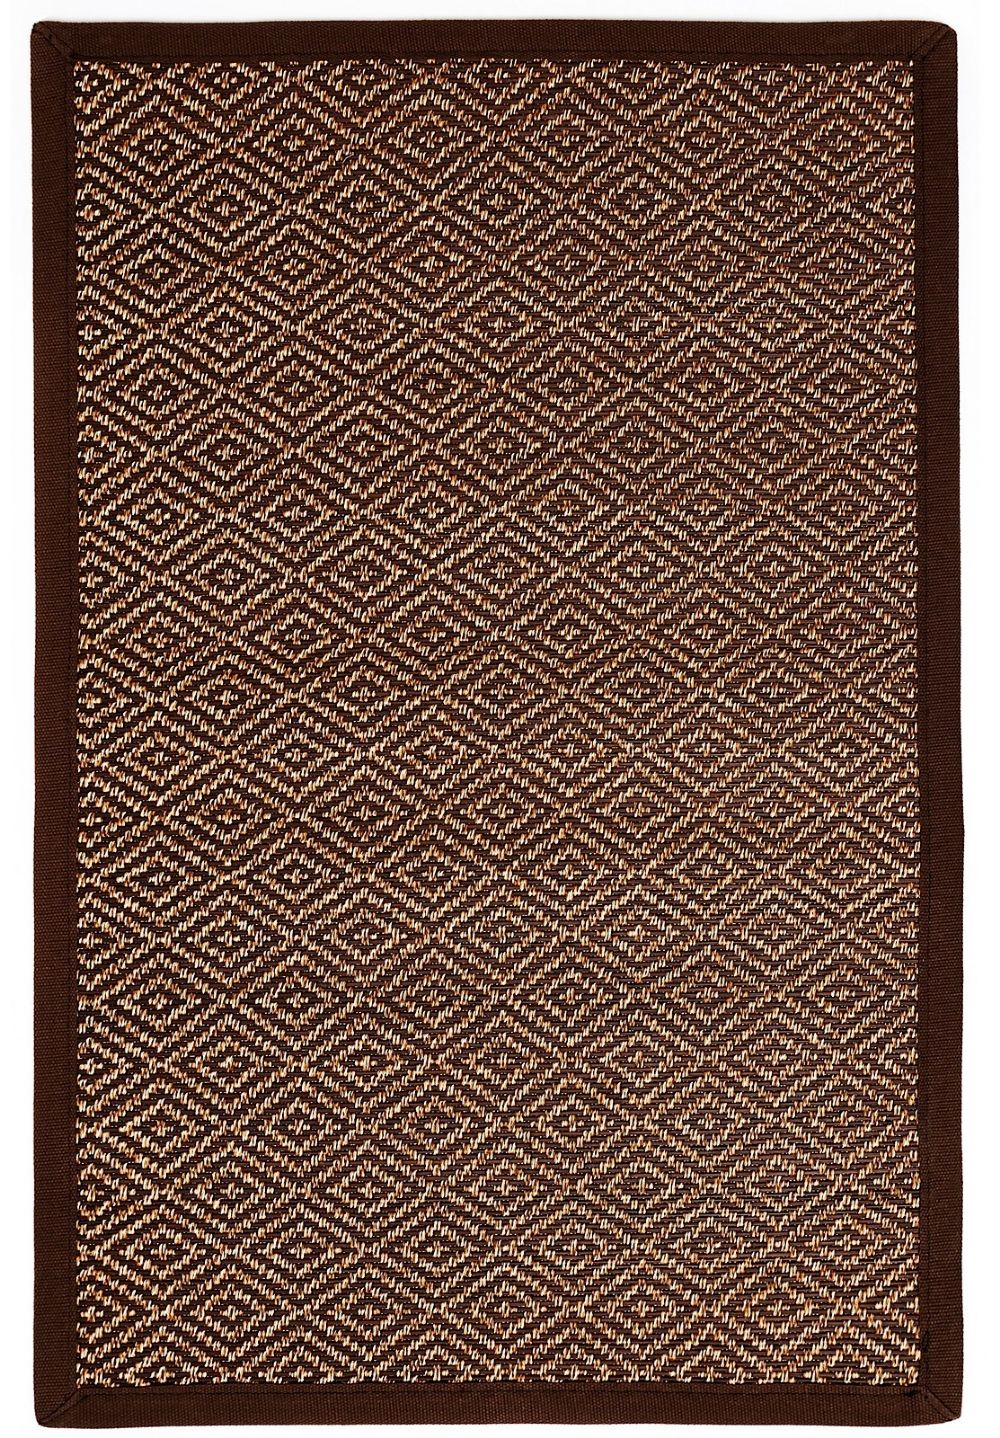 anji mountain odyssey bamboo area rug collection